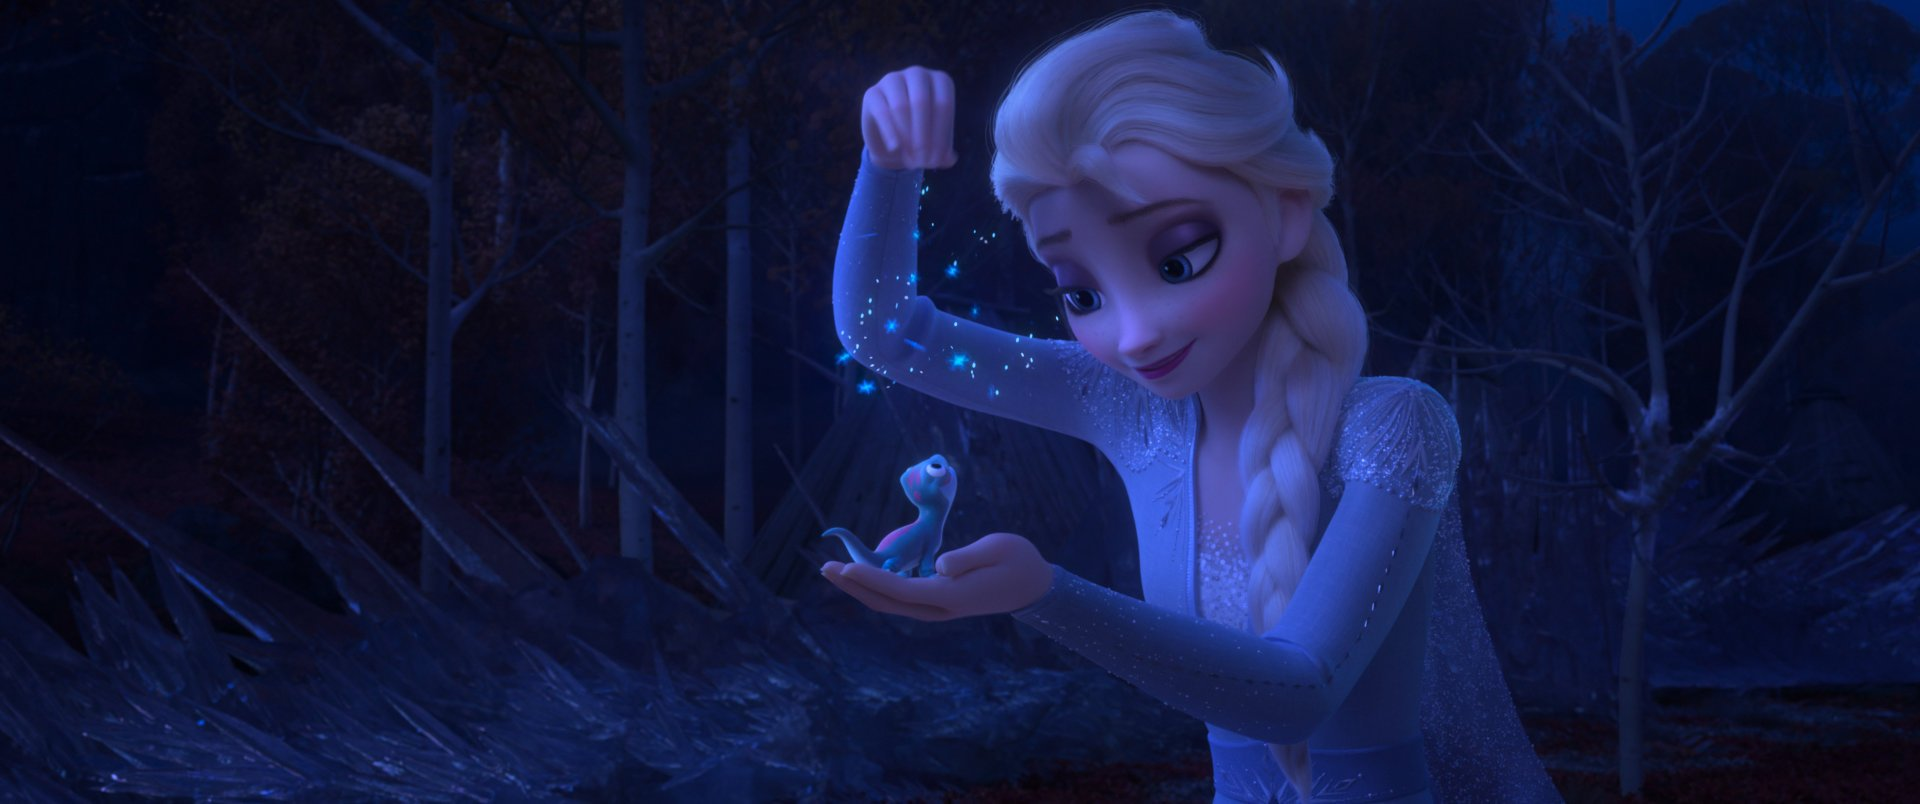 Frozen 2 Ending Explained and How Elsa Got her Ice Powers